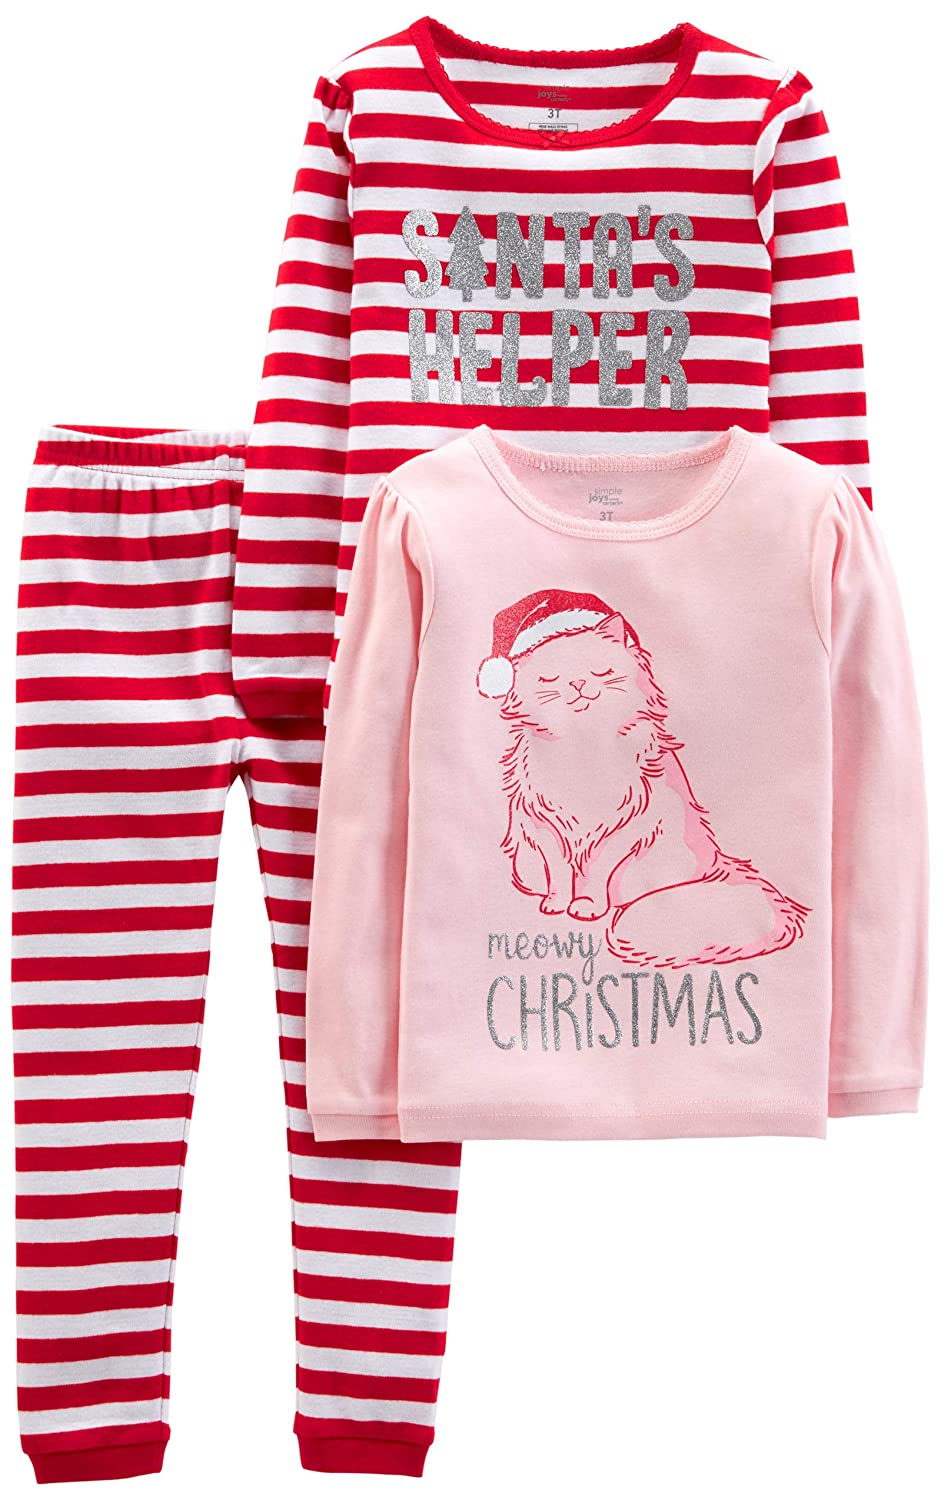 Little Kid Simple Joys by Carters Baby and Toddler Girls 3-Piece Snug-Fit Cotton Christmas Pajama Set